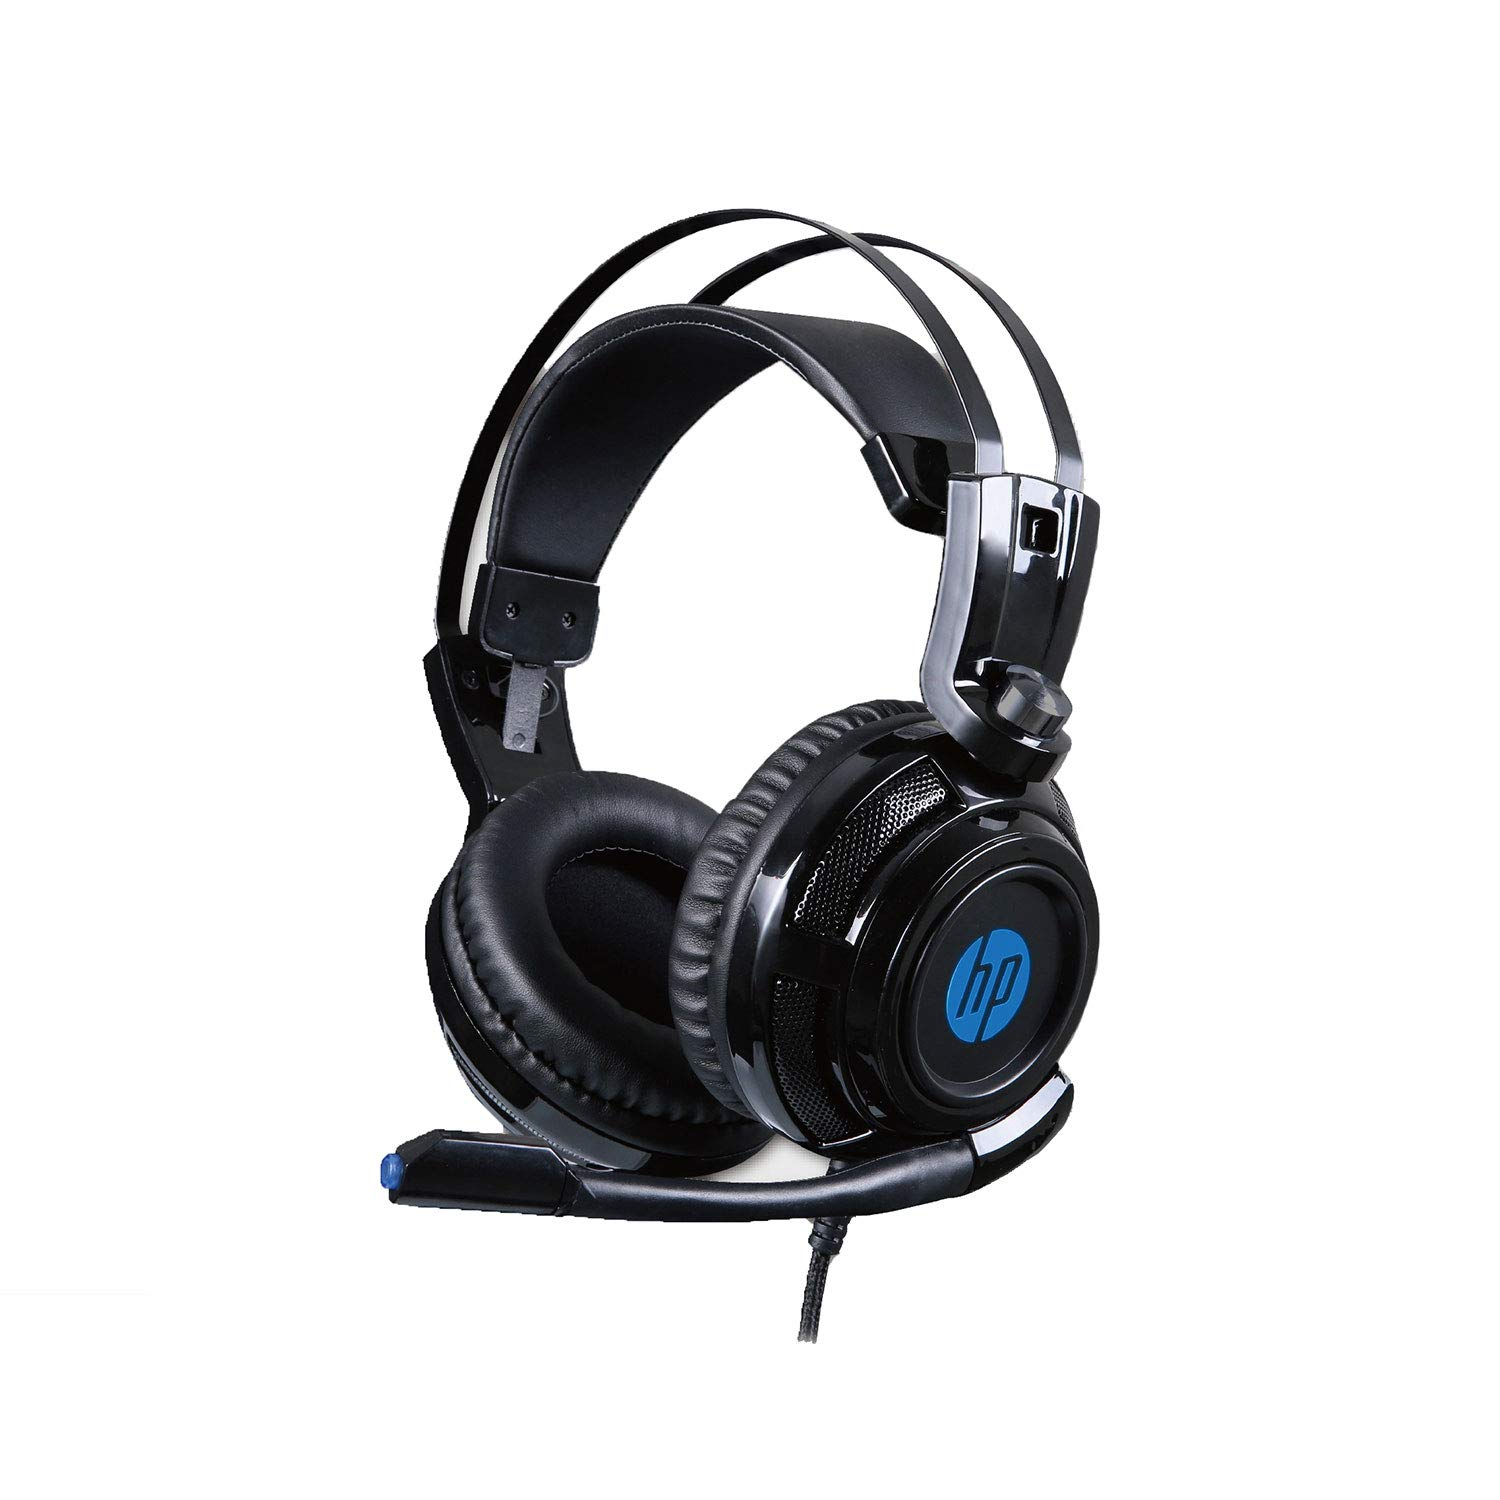 HP H200 Wired Headset